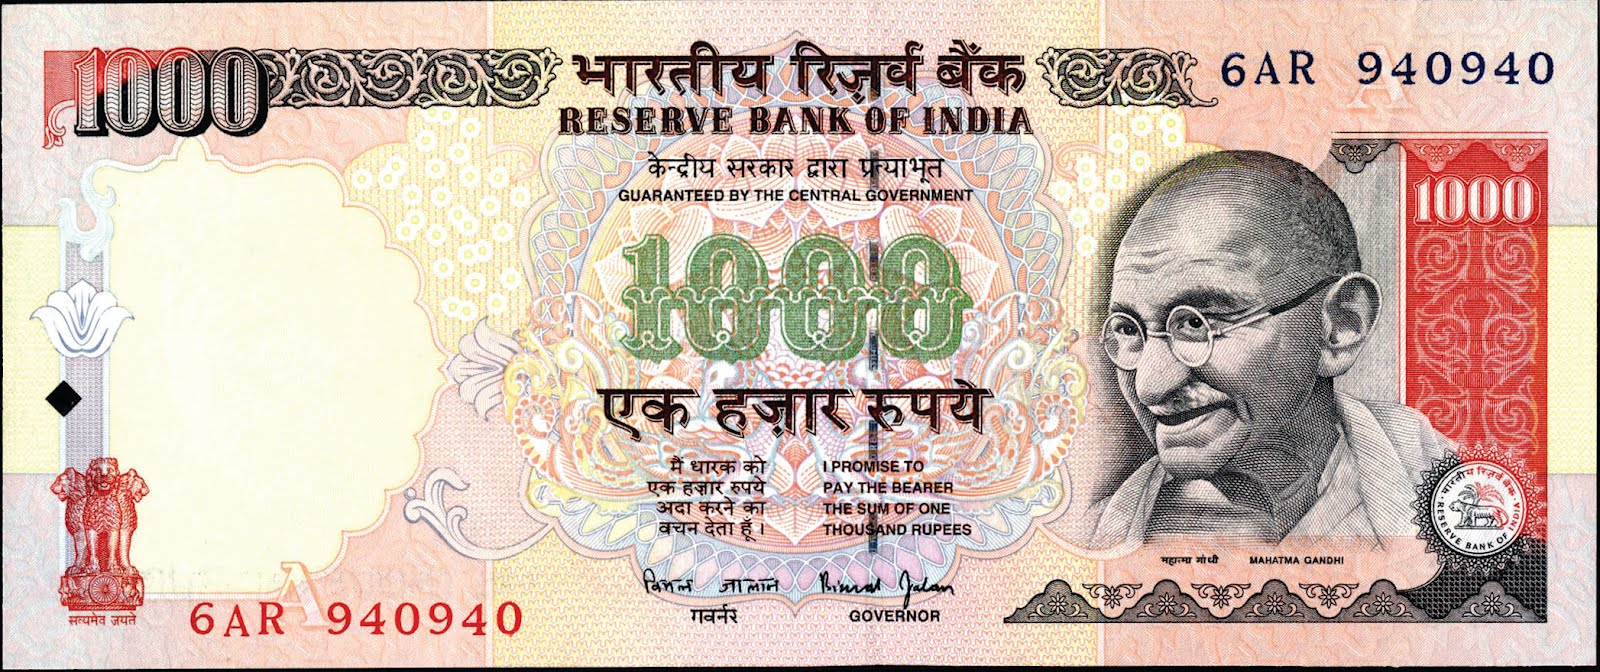 Rupee Note Notes of Rupees One